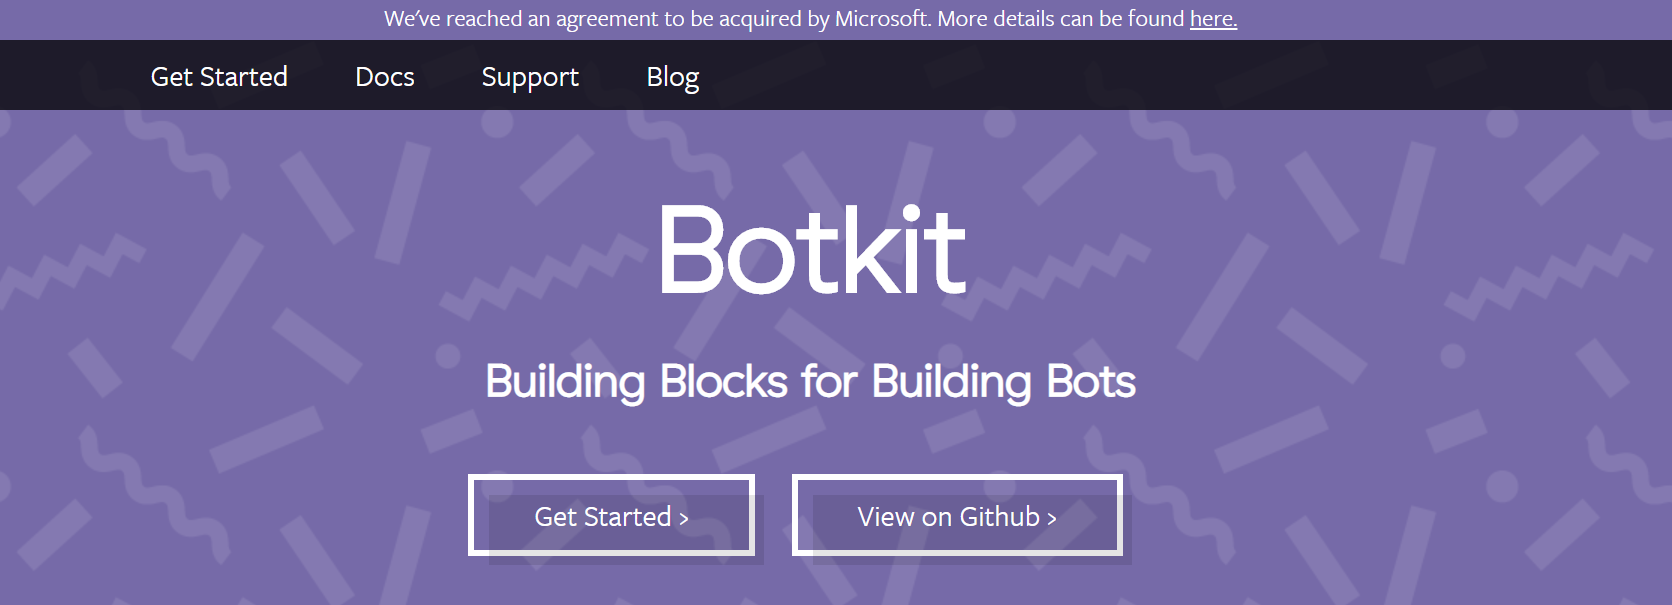 best chatbot builders - Botkit